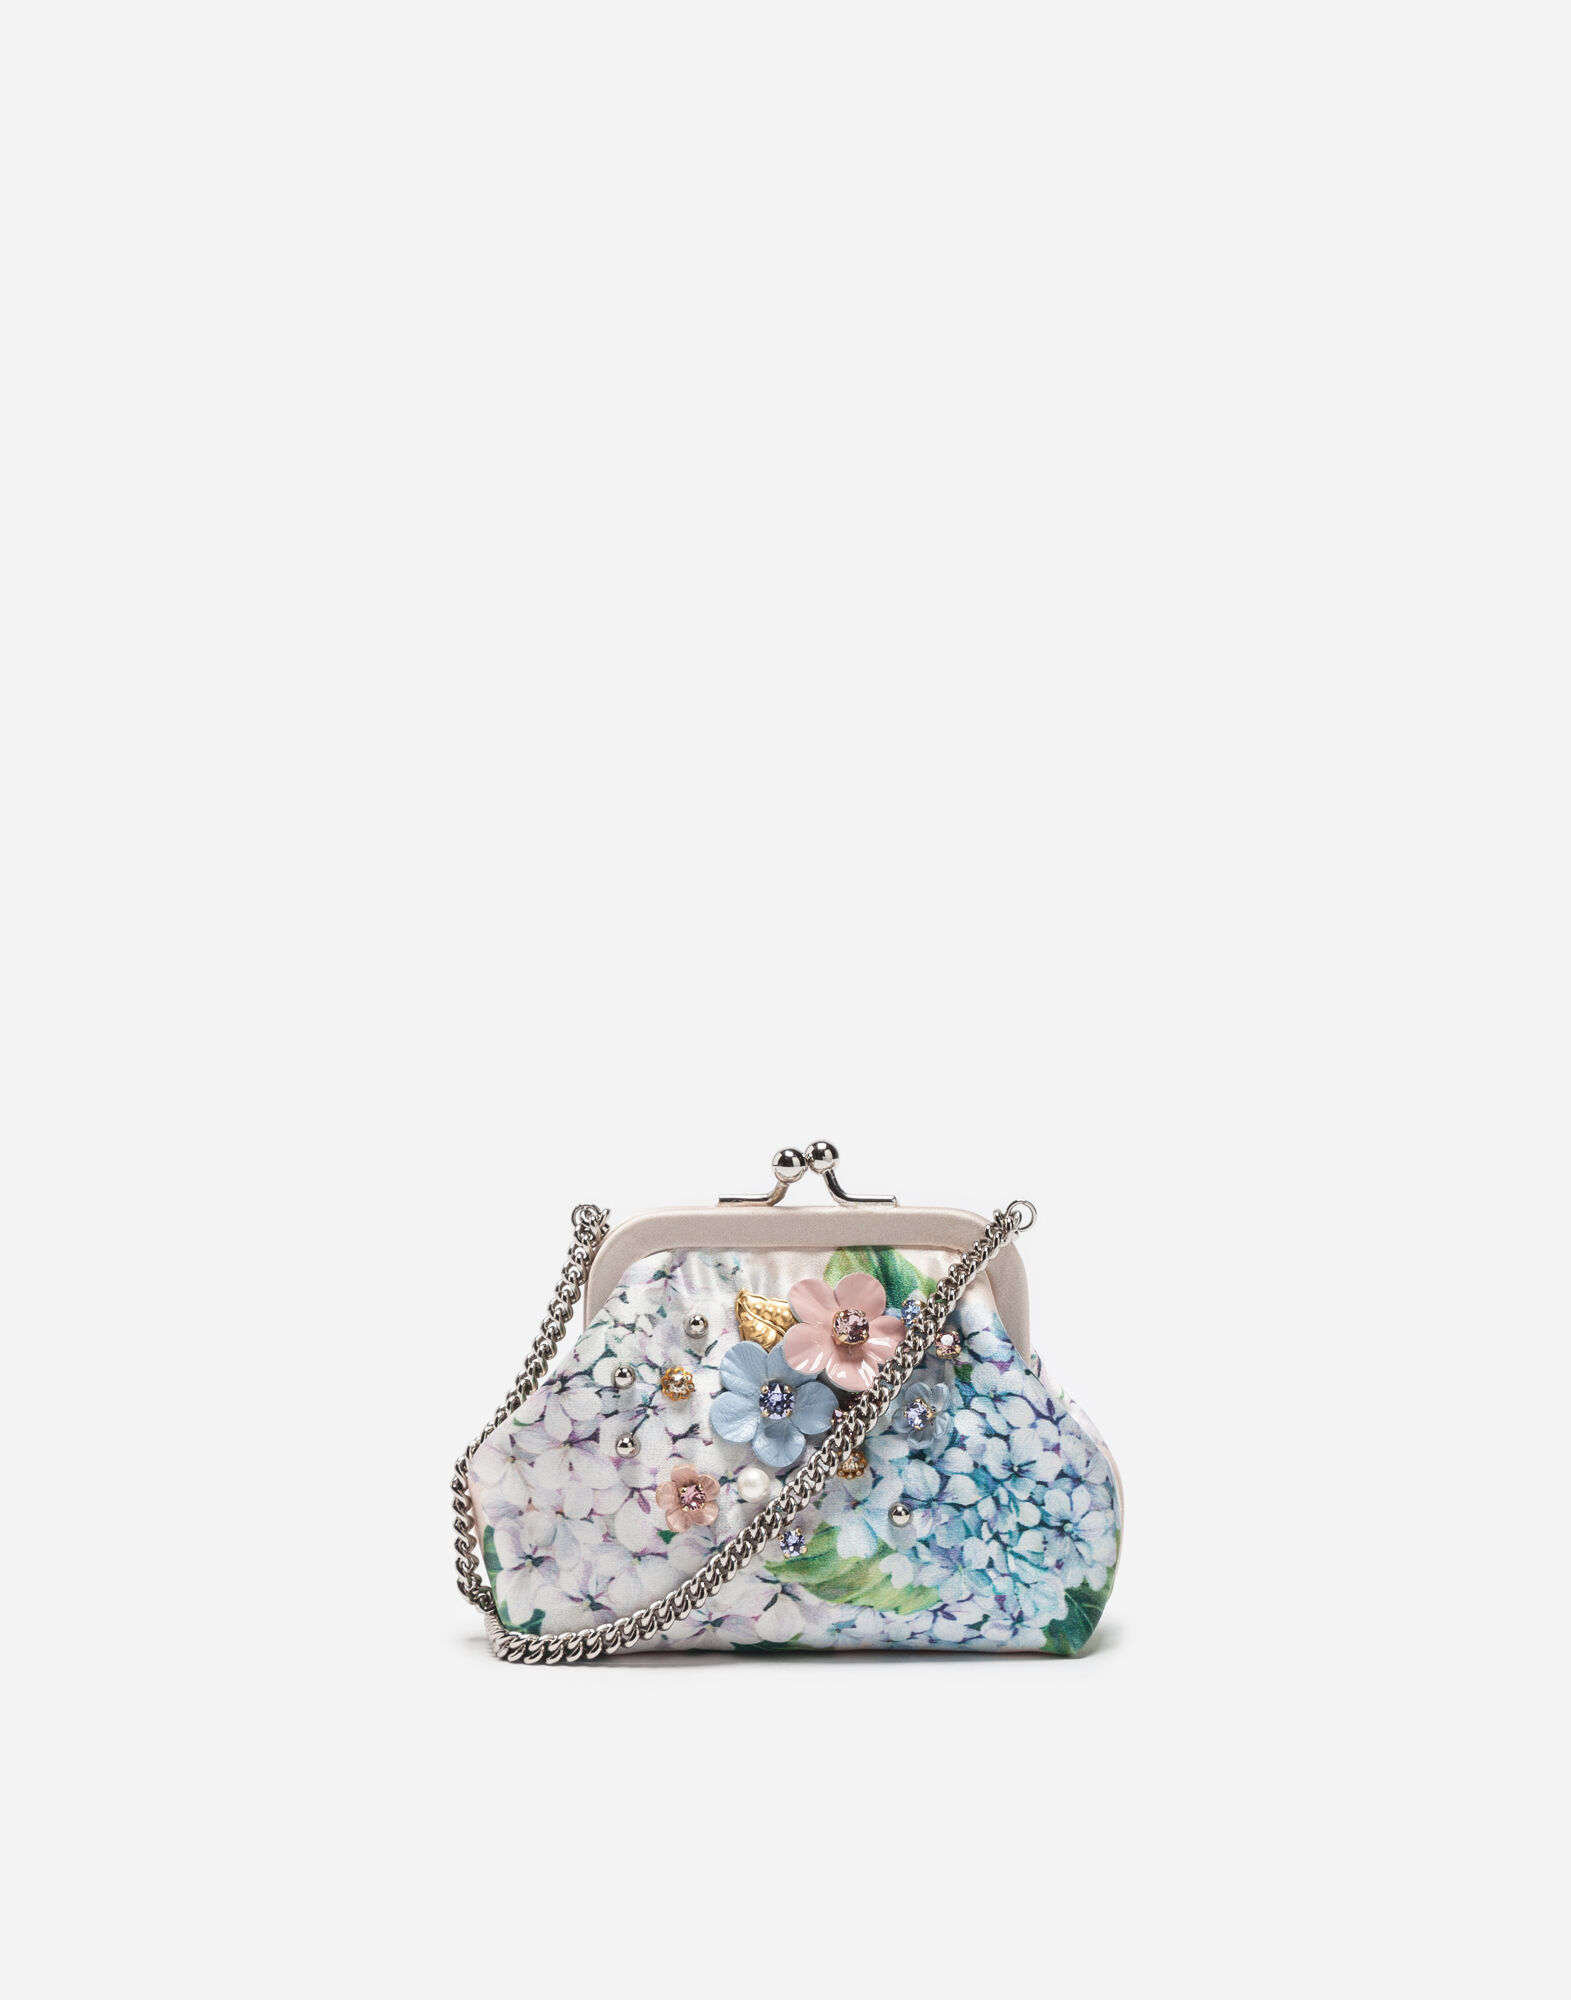 PRINTED SATIN BAG WITH APPLIQUÉ DETAILS